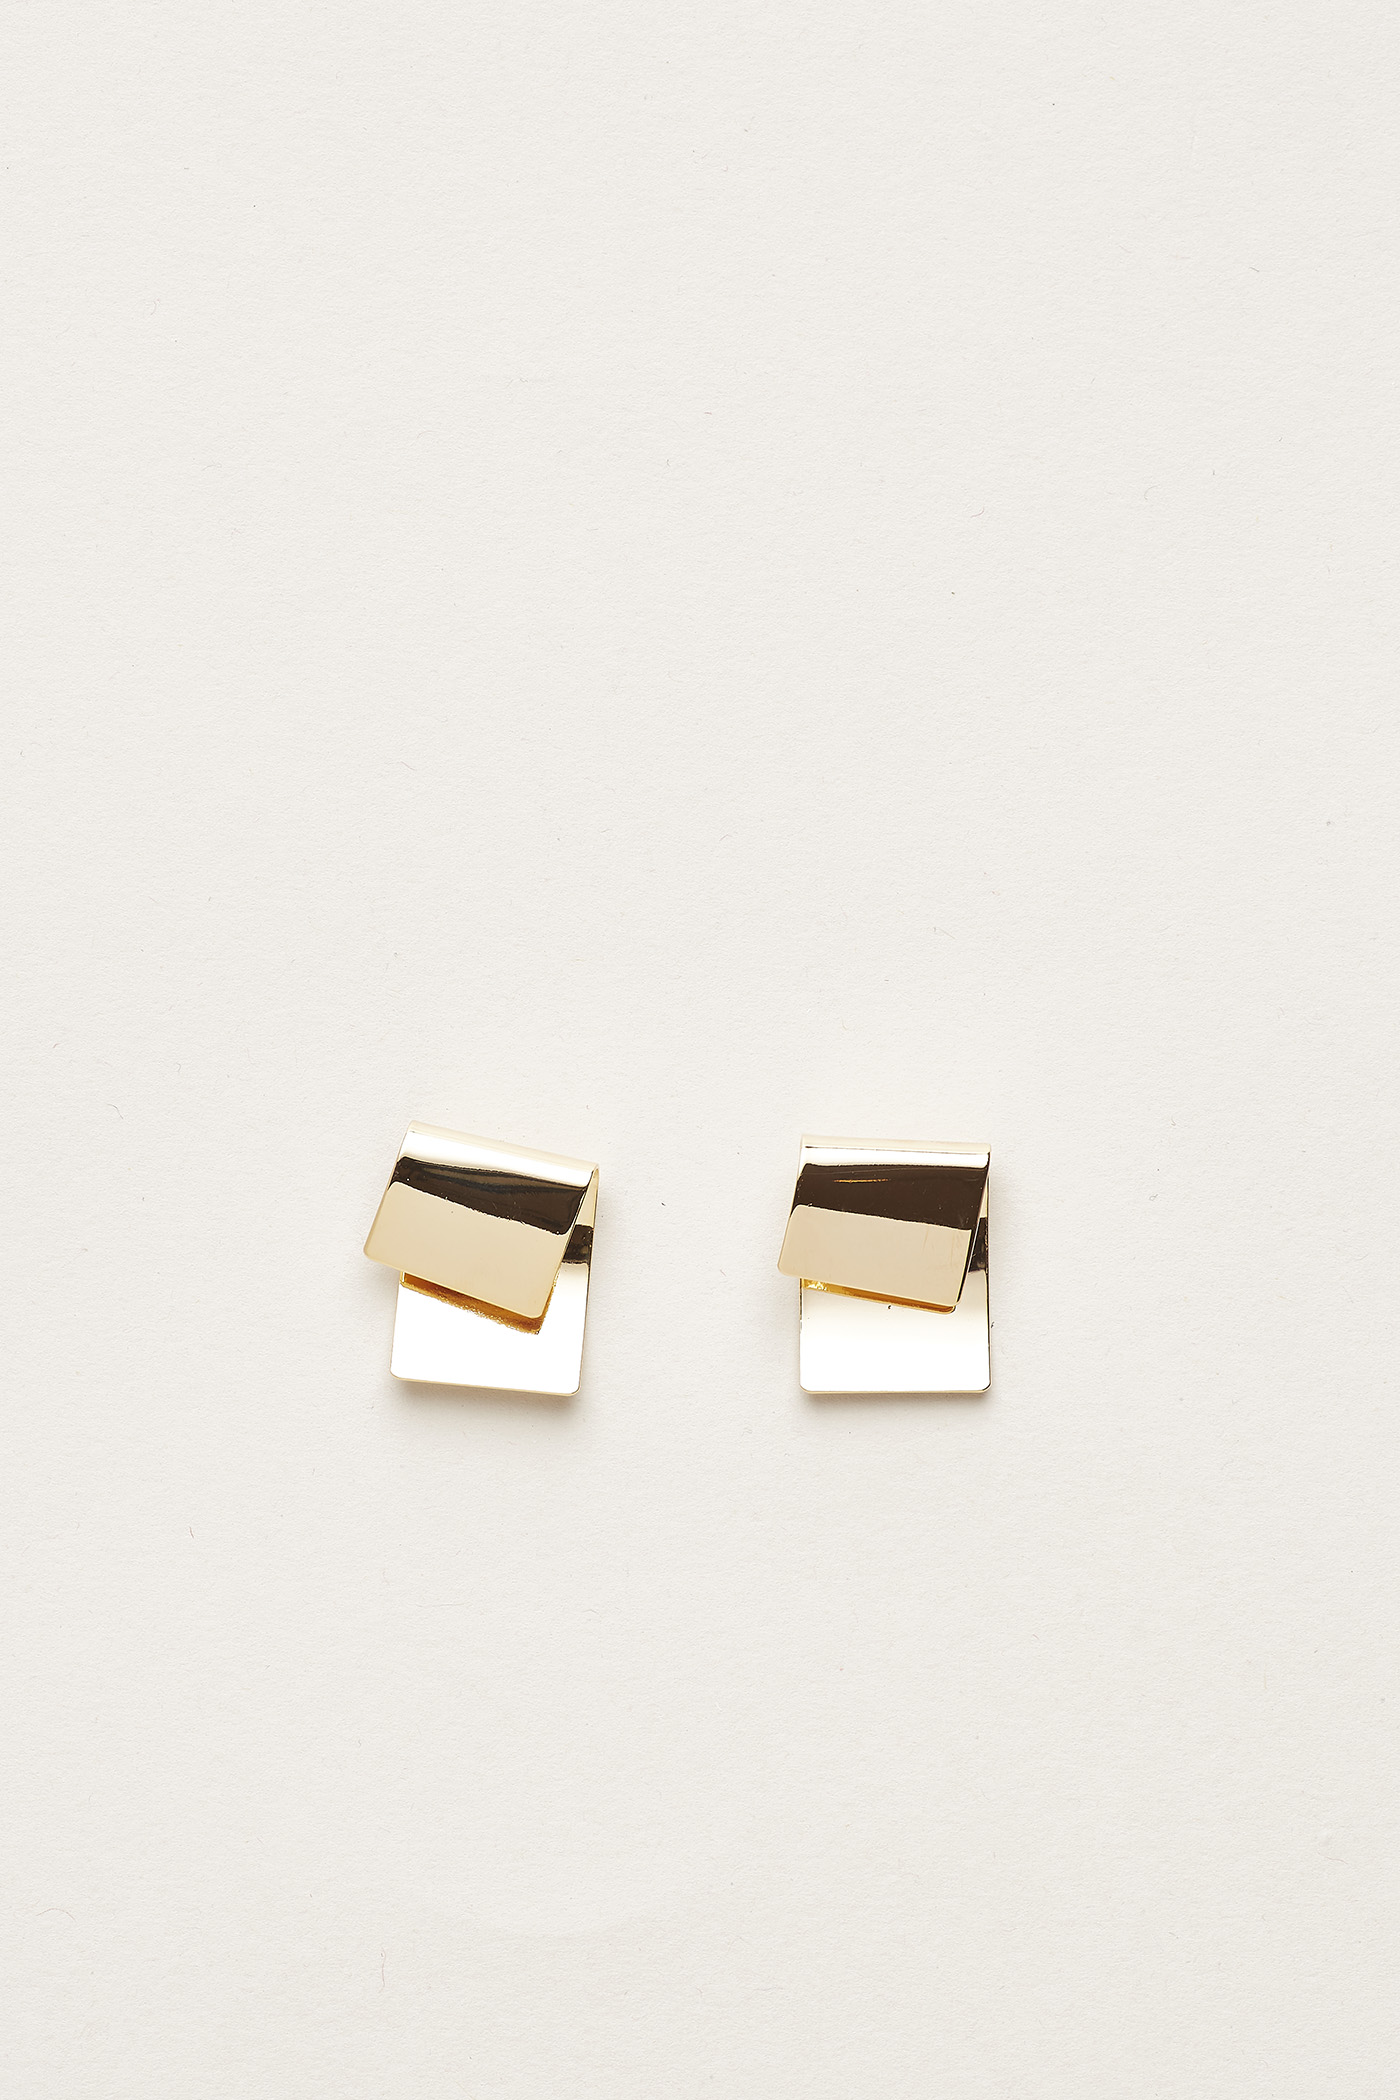 Roric Fold Textured Earrings